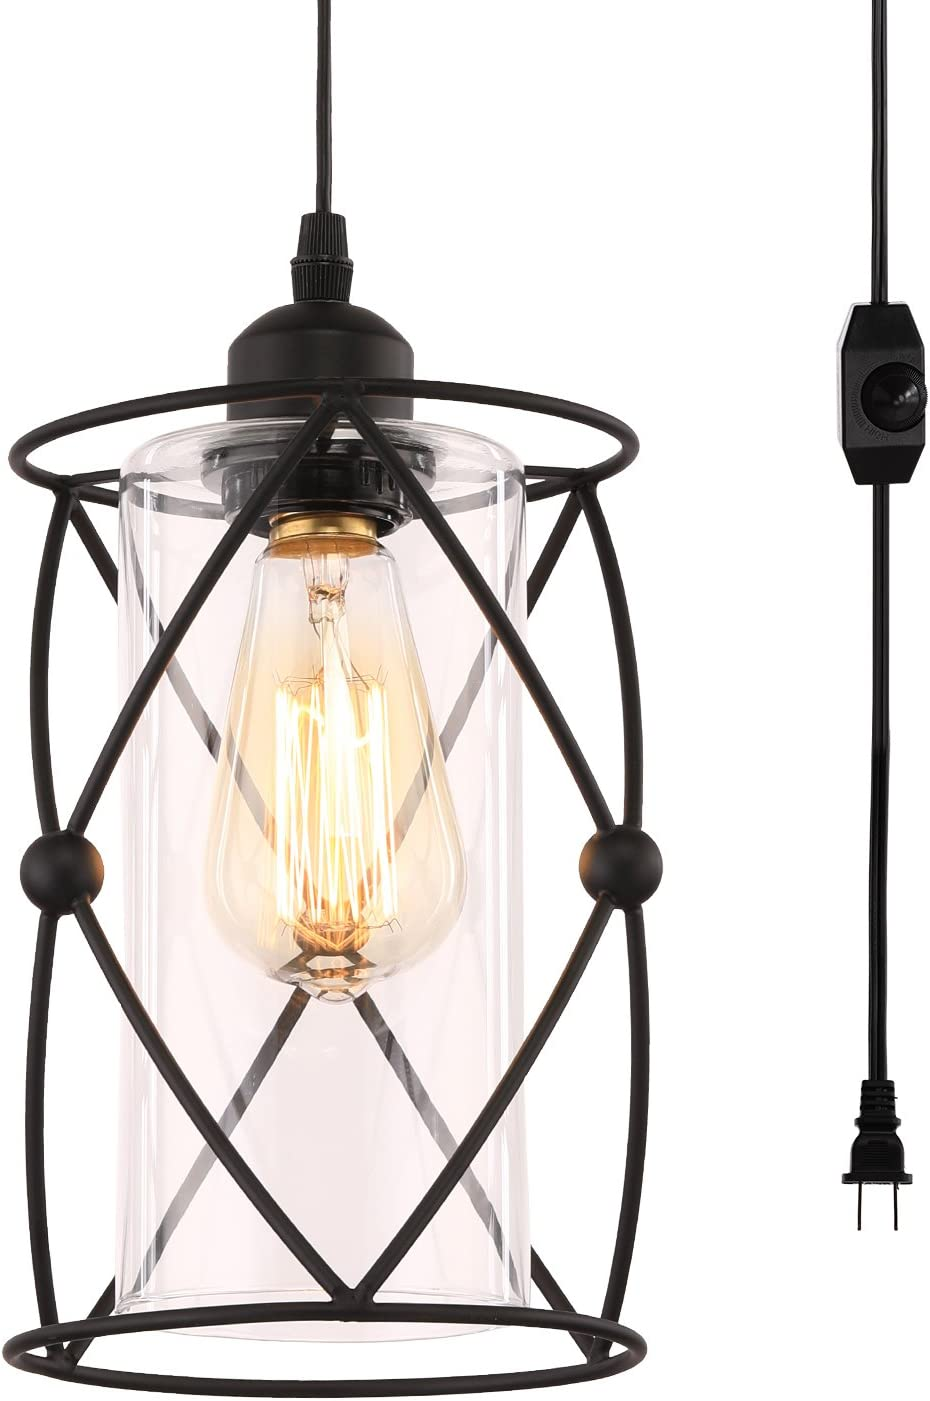 Creatgeek Plug-In Modern Industrial Glass Pendant Light with 16.4 Ft Cord and In-Line On Off Dimmer Switch,Black Finish Cylinder Style